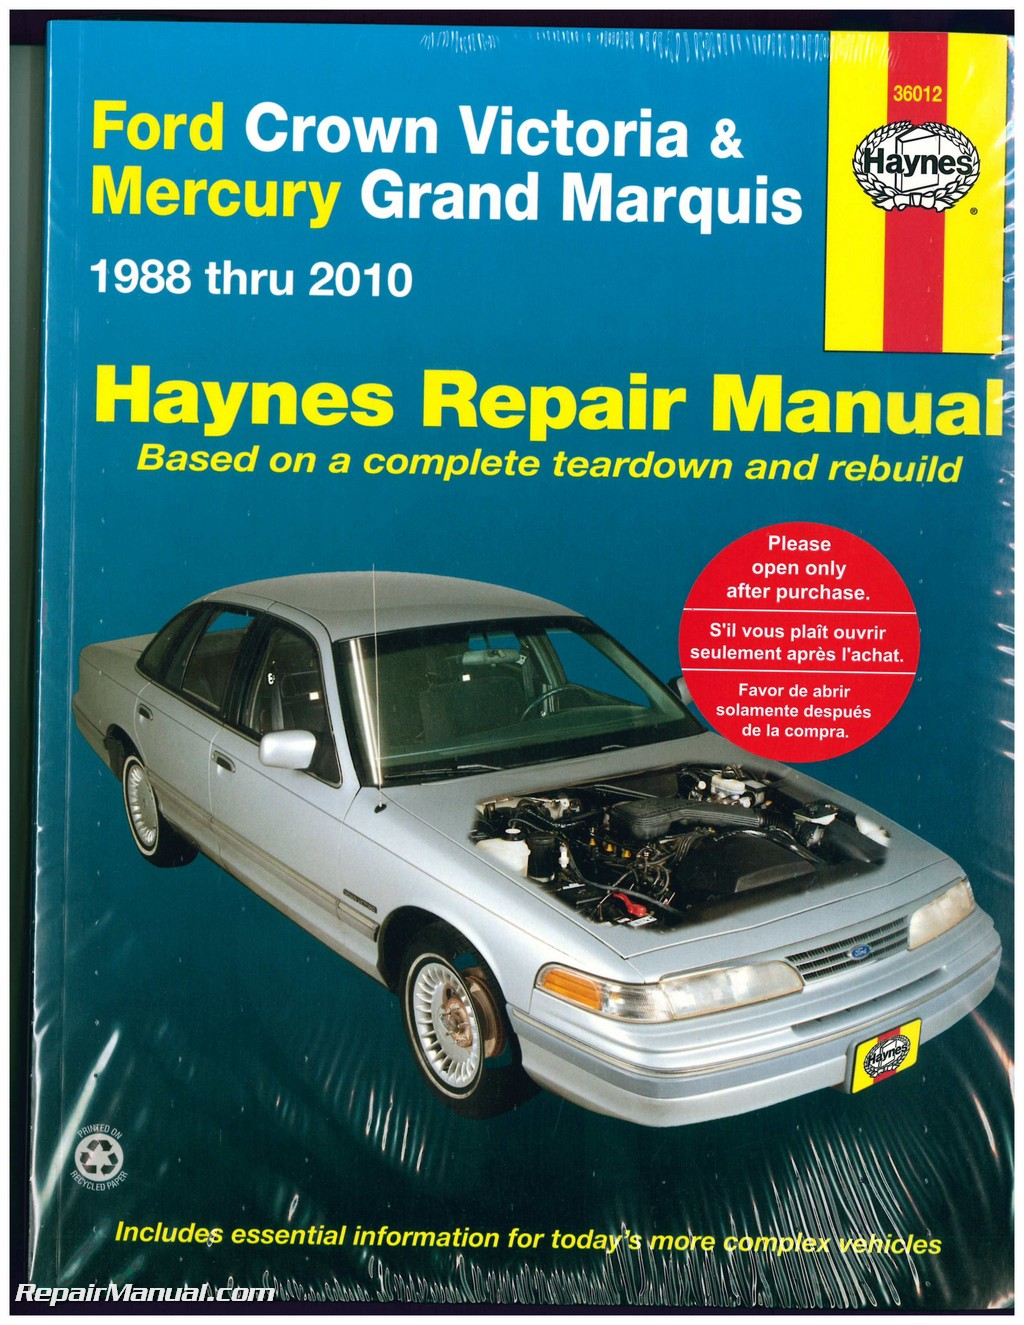 Image Result For Ford Crown Victoria Service Manual